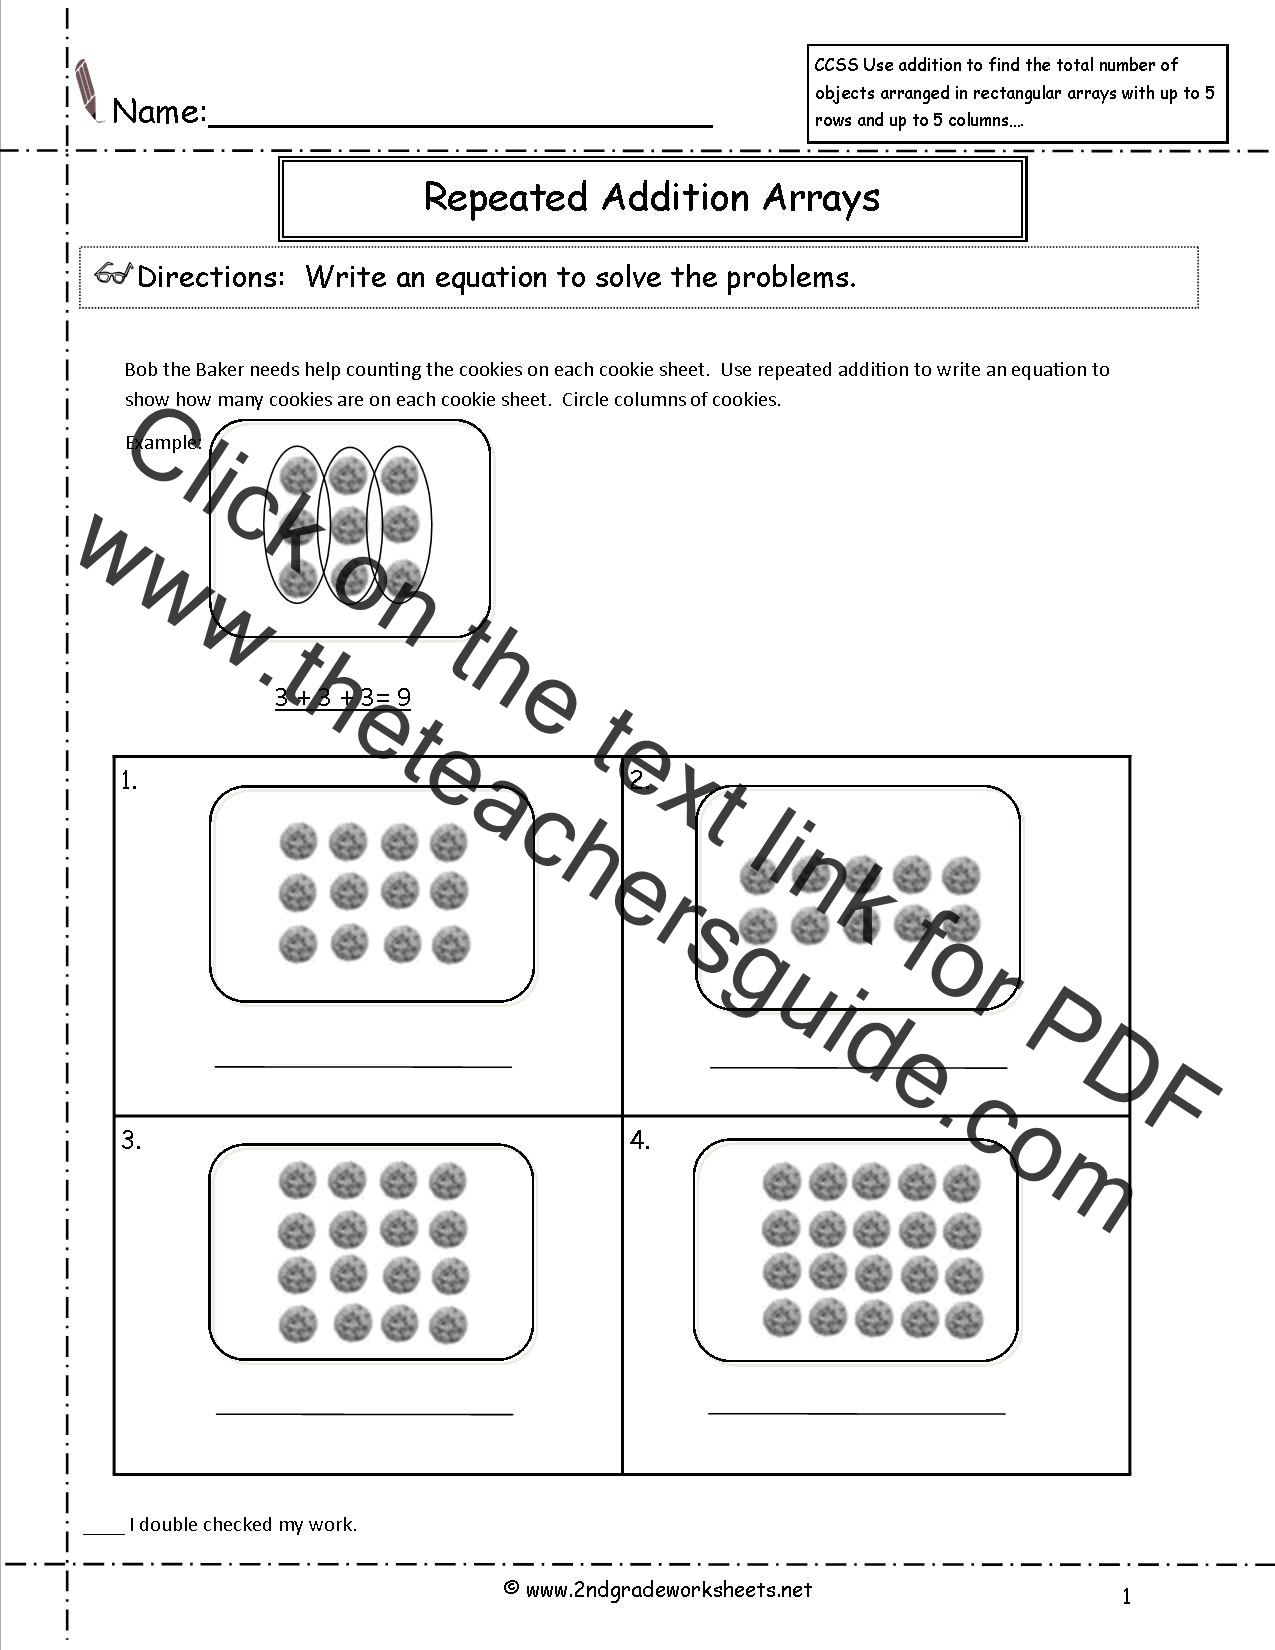 Uncategorized Common Core Math Worksheets 2nd grade math common core state standards worksheets ccss 2 oa 4 worksheets